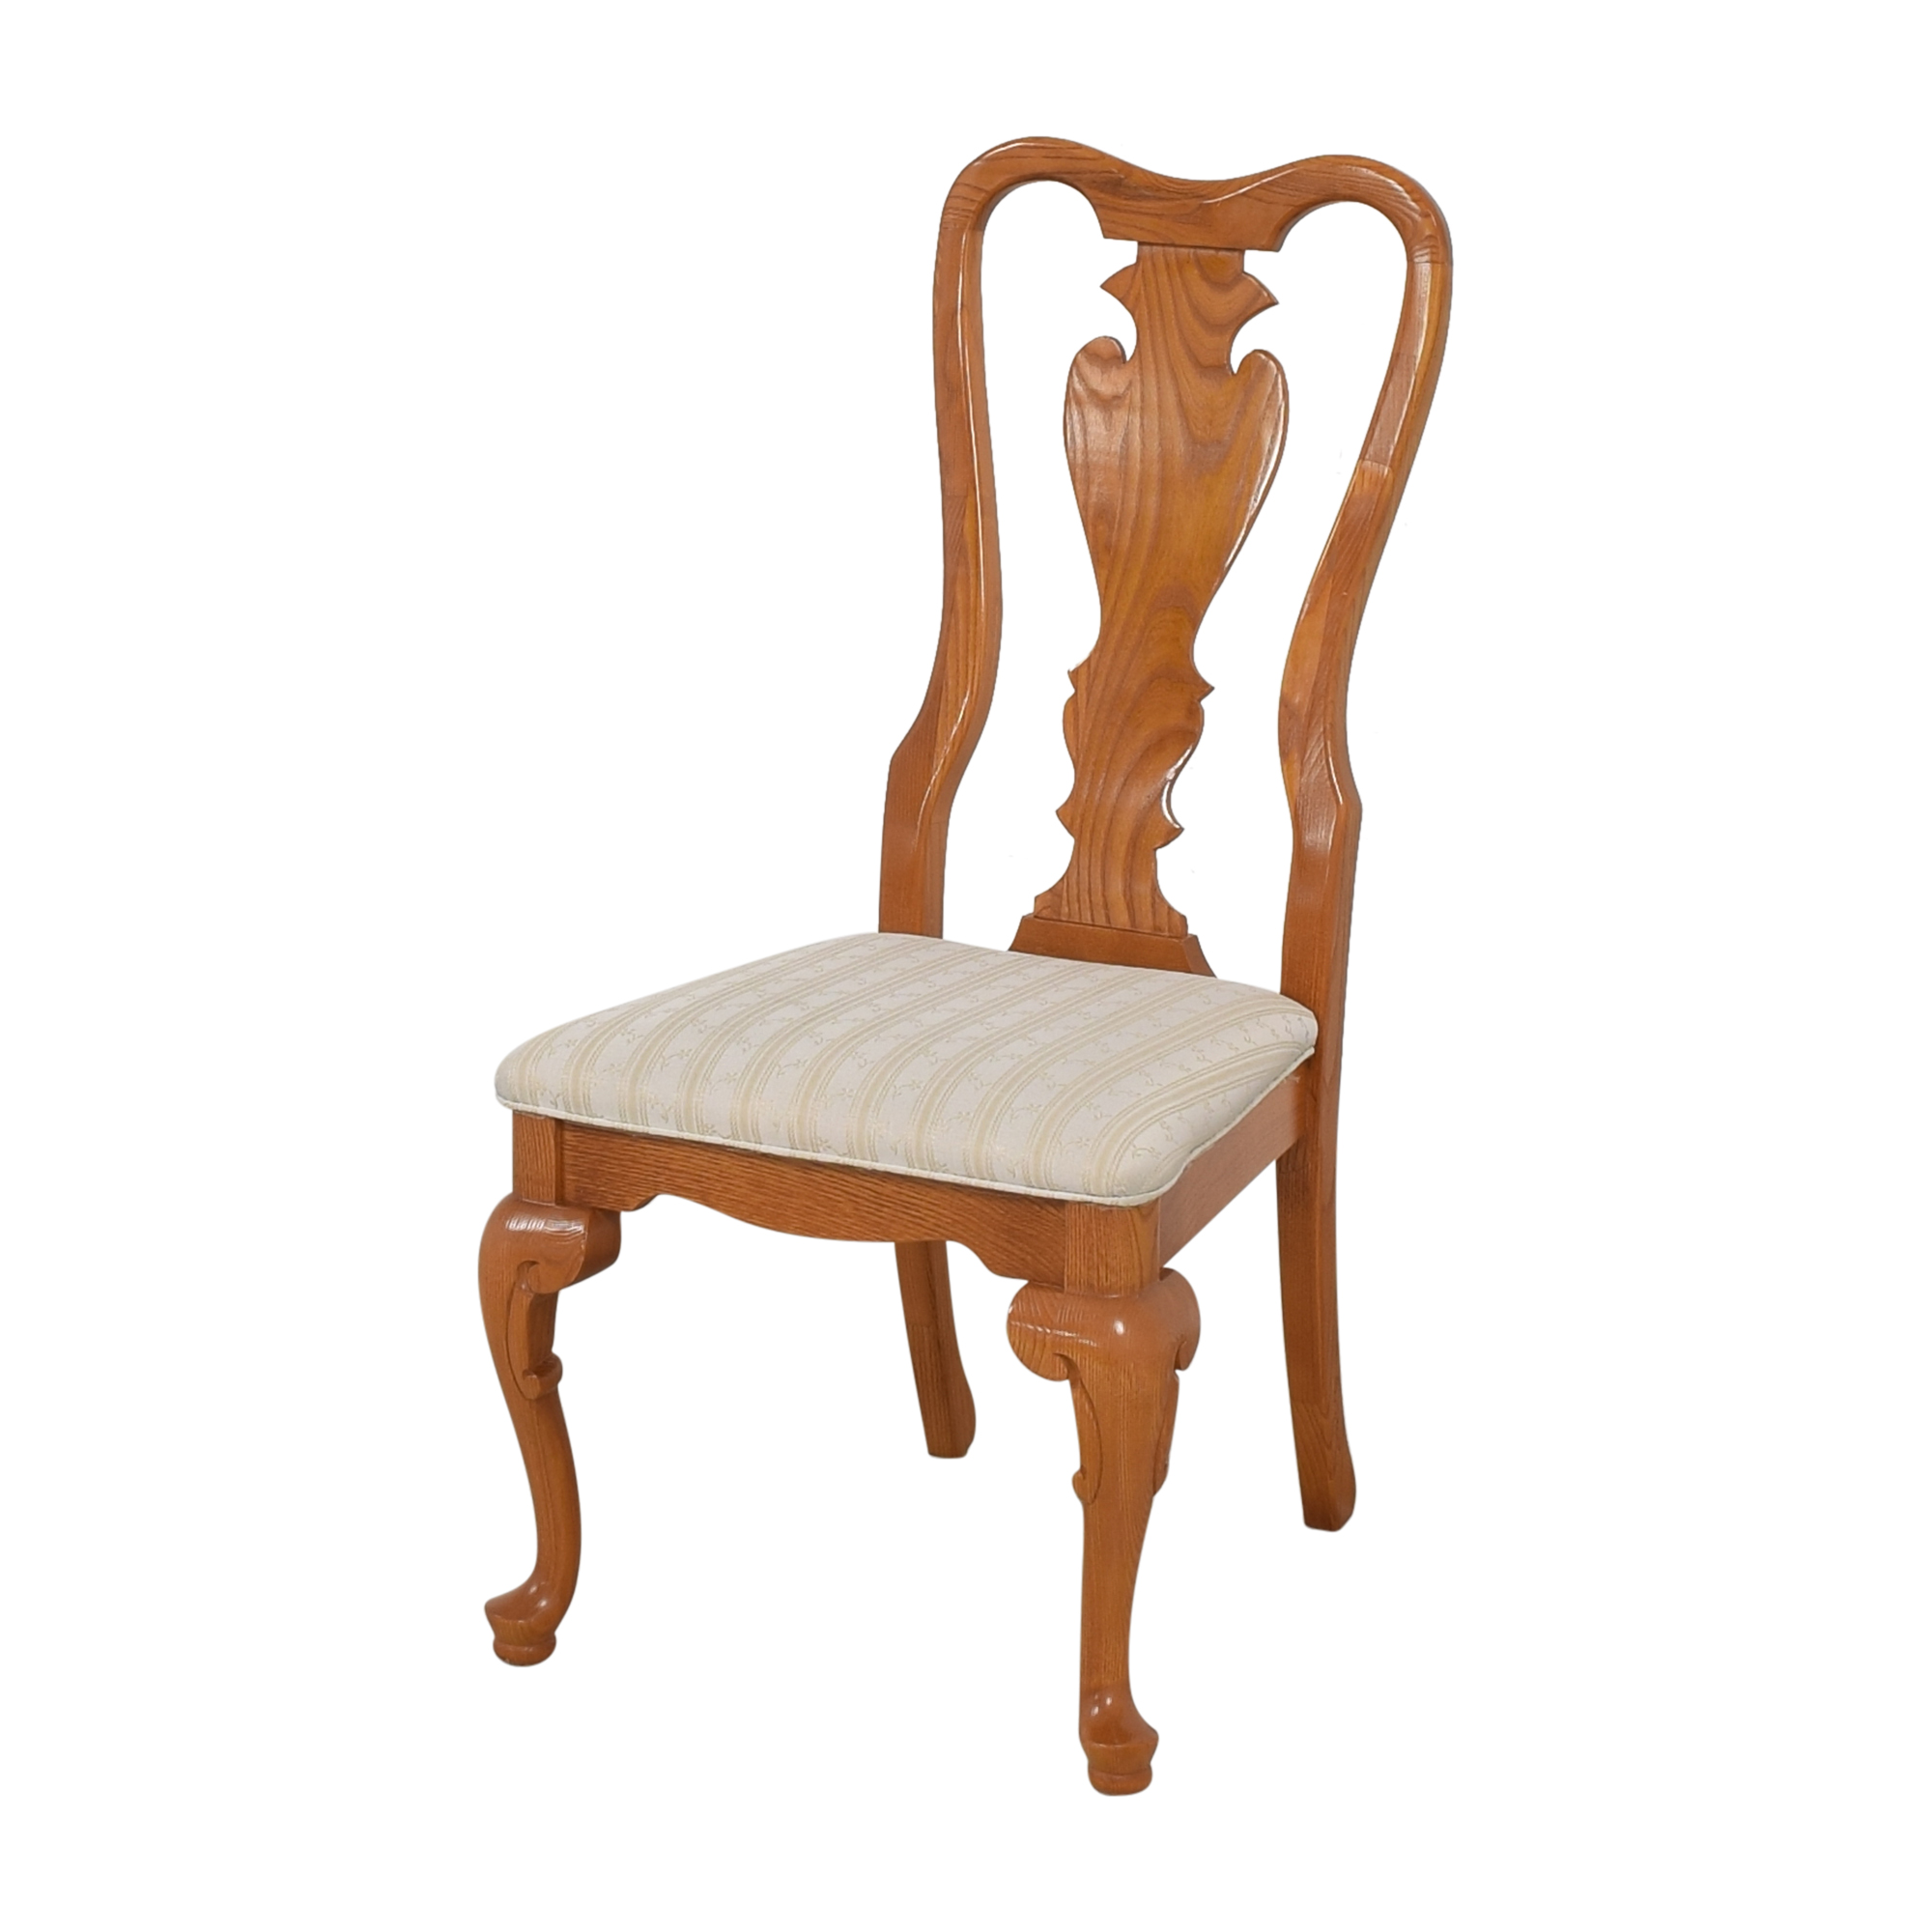 Sumter Cabinet Co. Sumter Cabinet Company Dining Chairs Dining Chairs